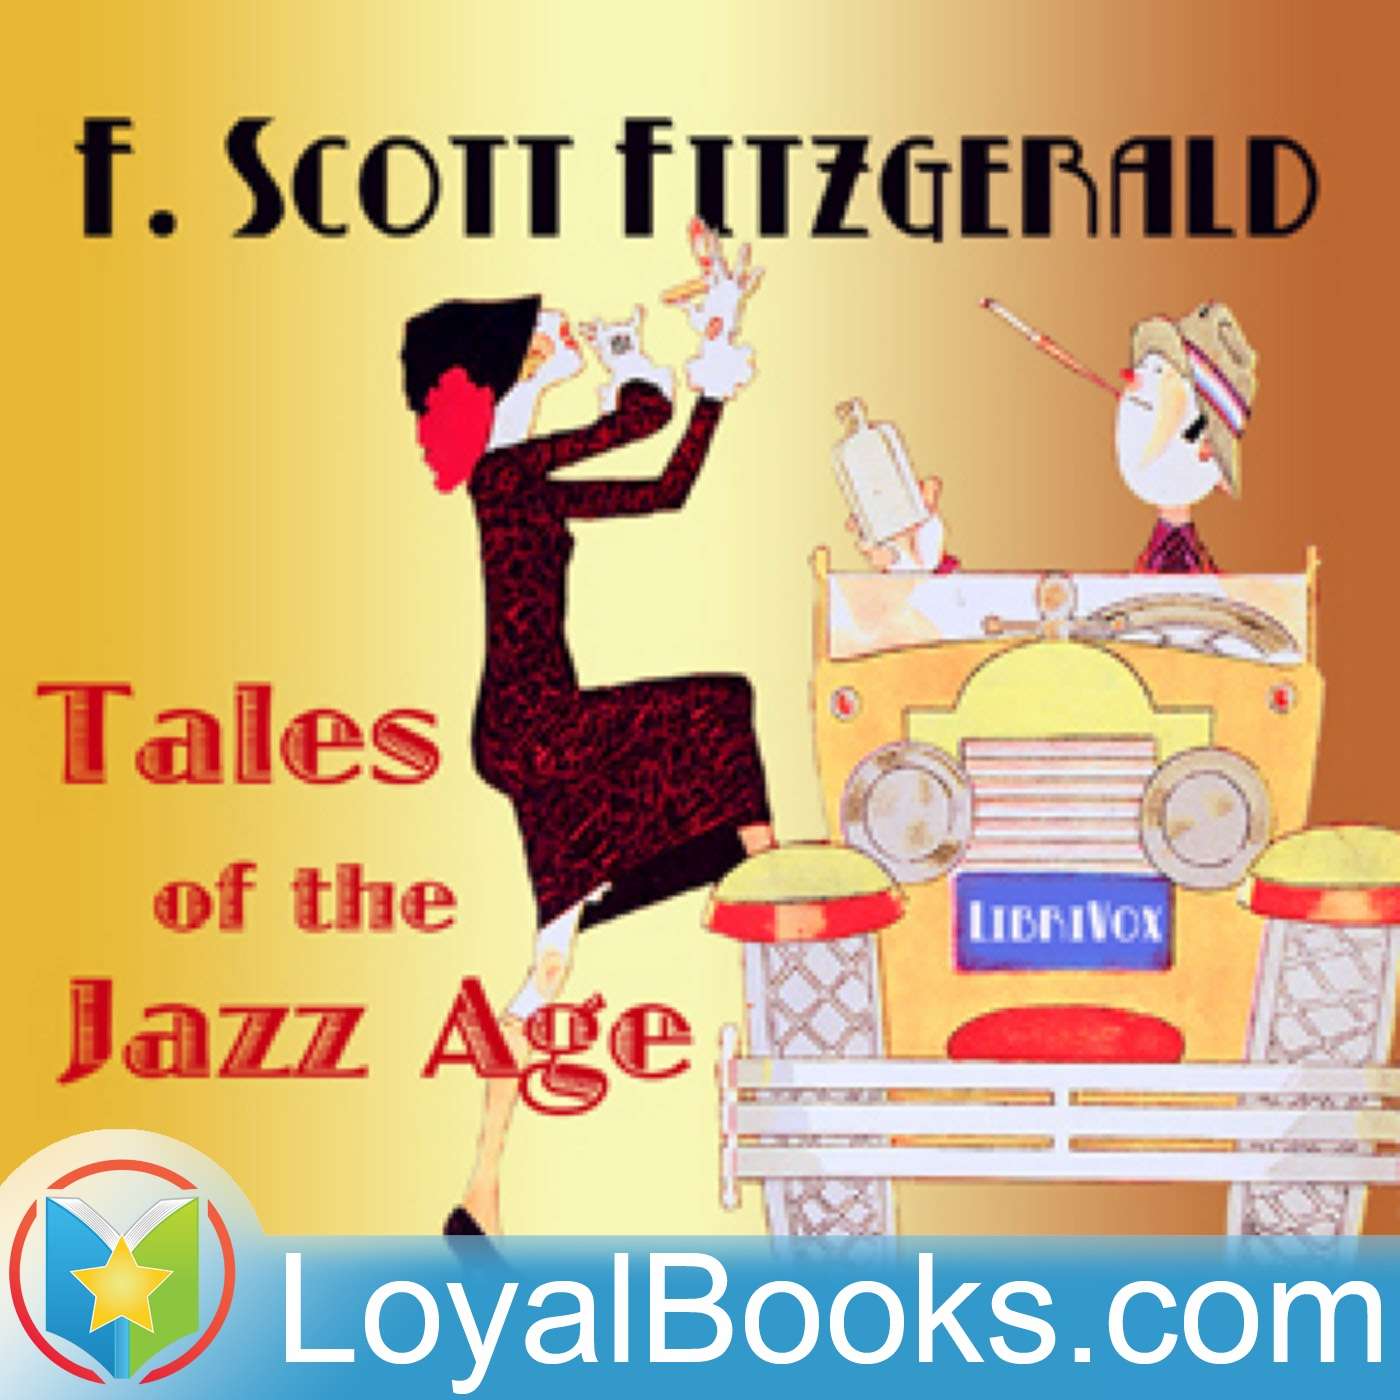 essay on jazz age Jazz age essays: over 180,000 jazz age essays, jazz age term papers, jazz age research paper, book reports 184 990 essays, term and research papers available for.